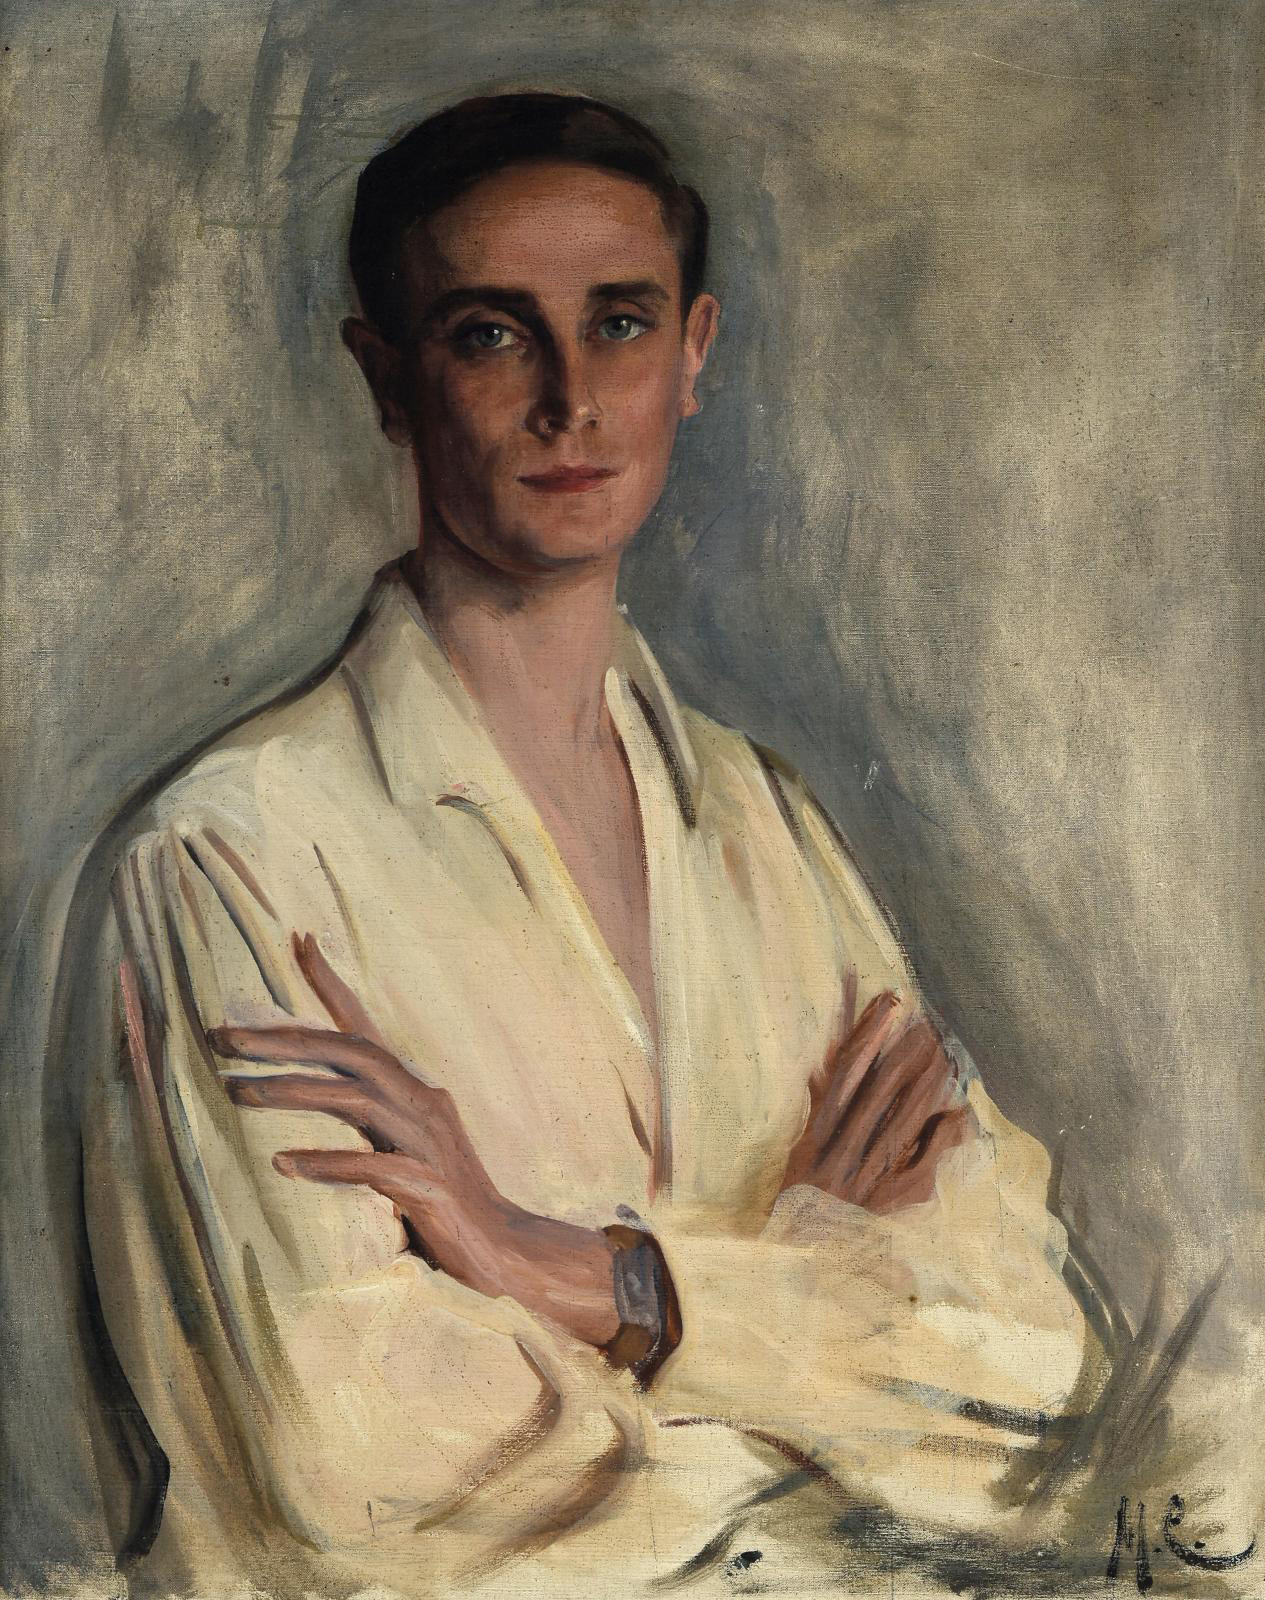 Early 20th-century Russian School, Portrait of Prince Felix Felixovich Yusupov (1887-1967), oil on canvas signed with the initials M.C., 80 x 63 cm/31.5 x 24.8 in. Estimate: €30,000/50,000